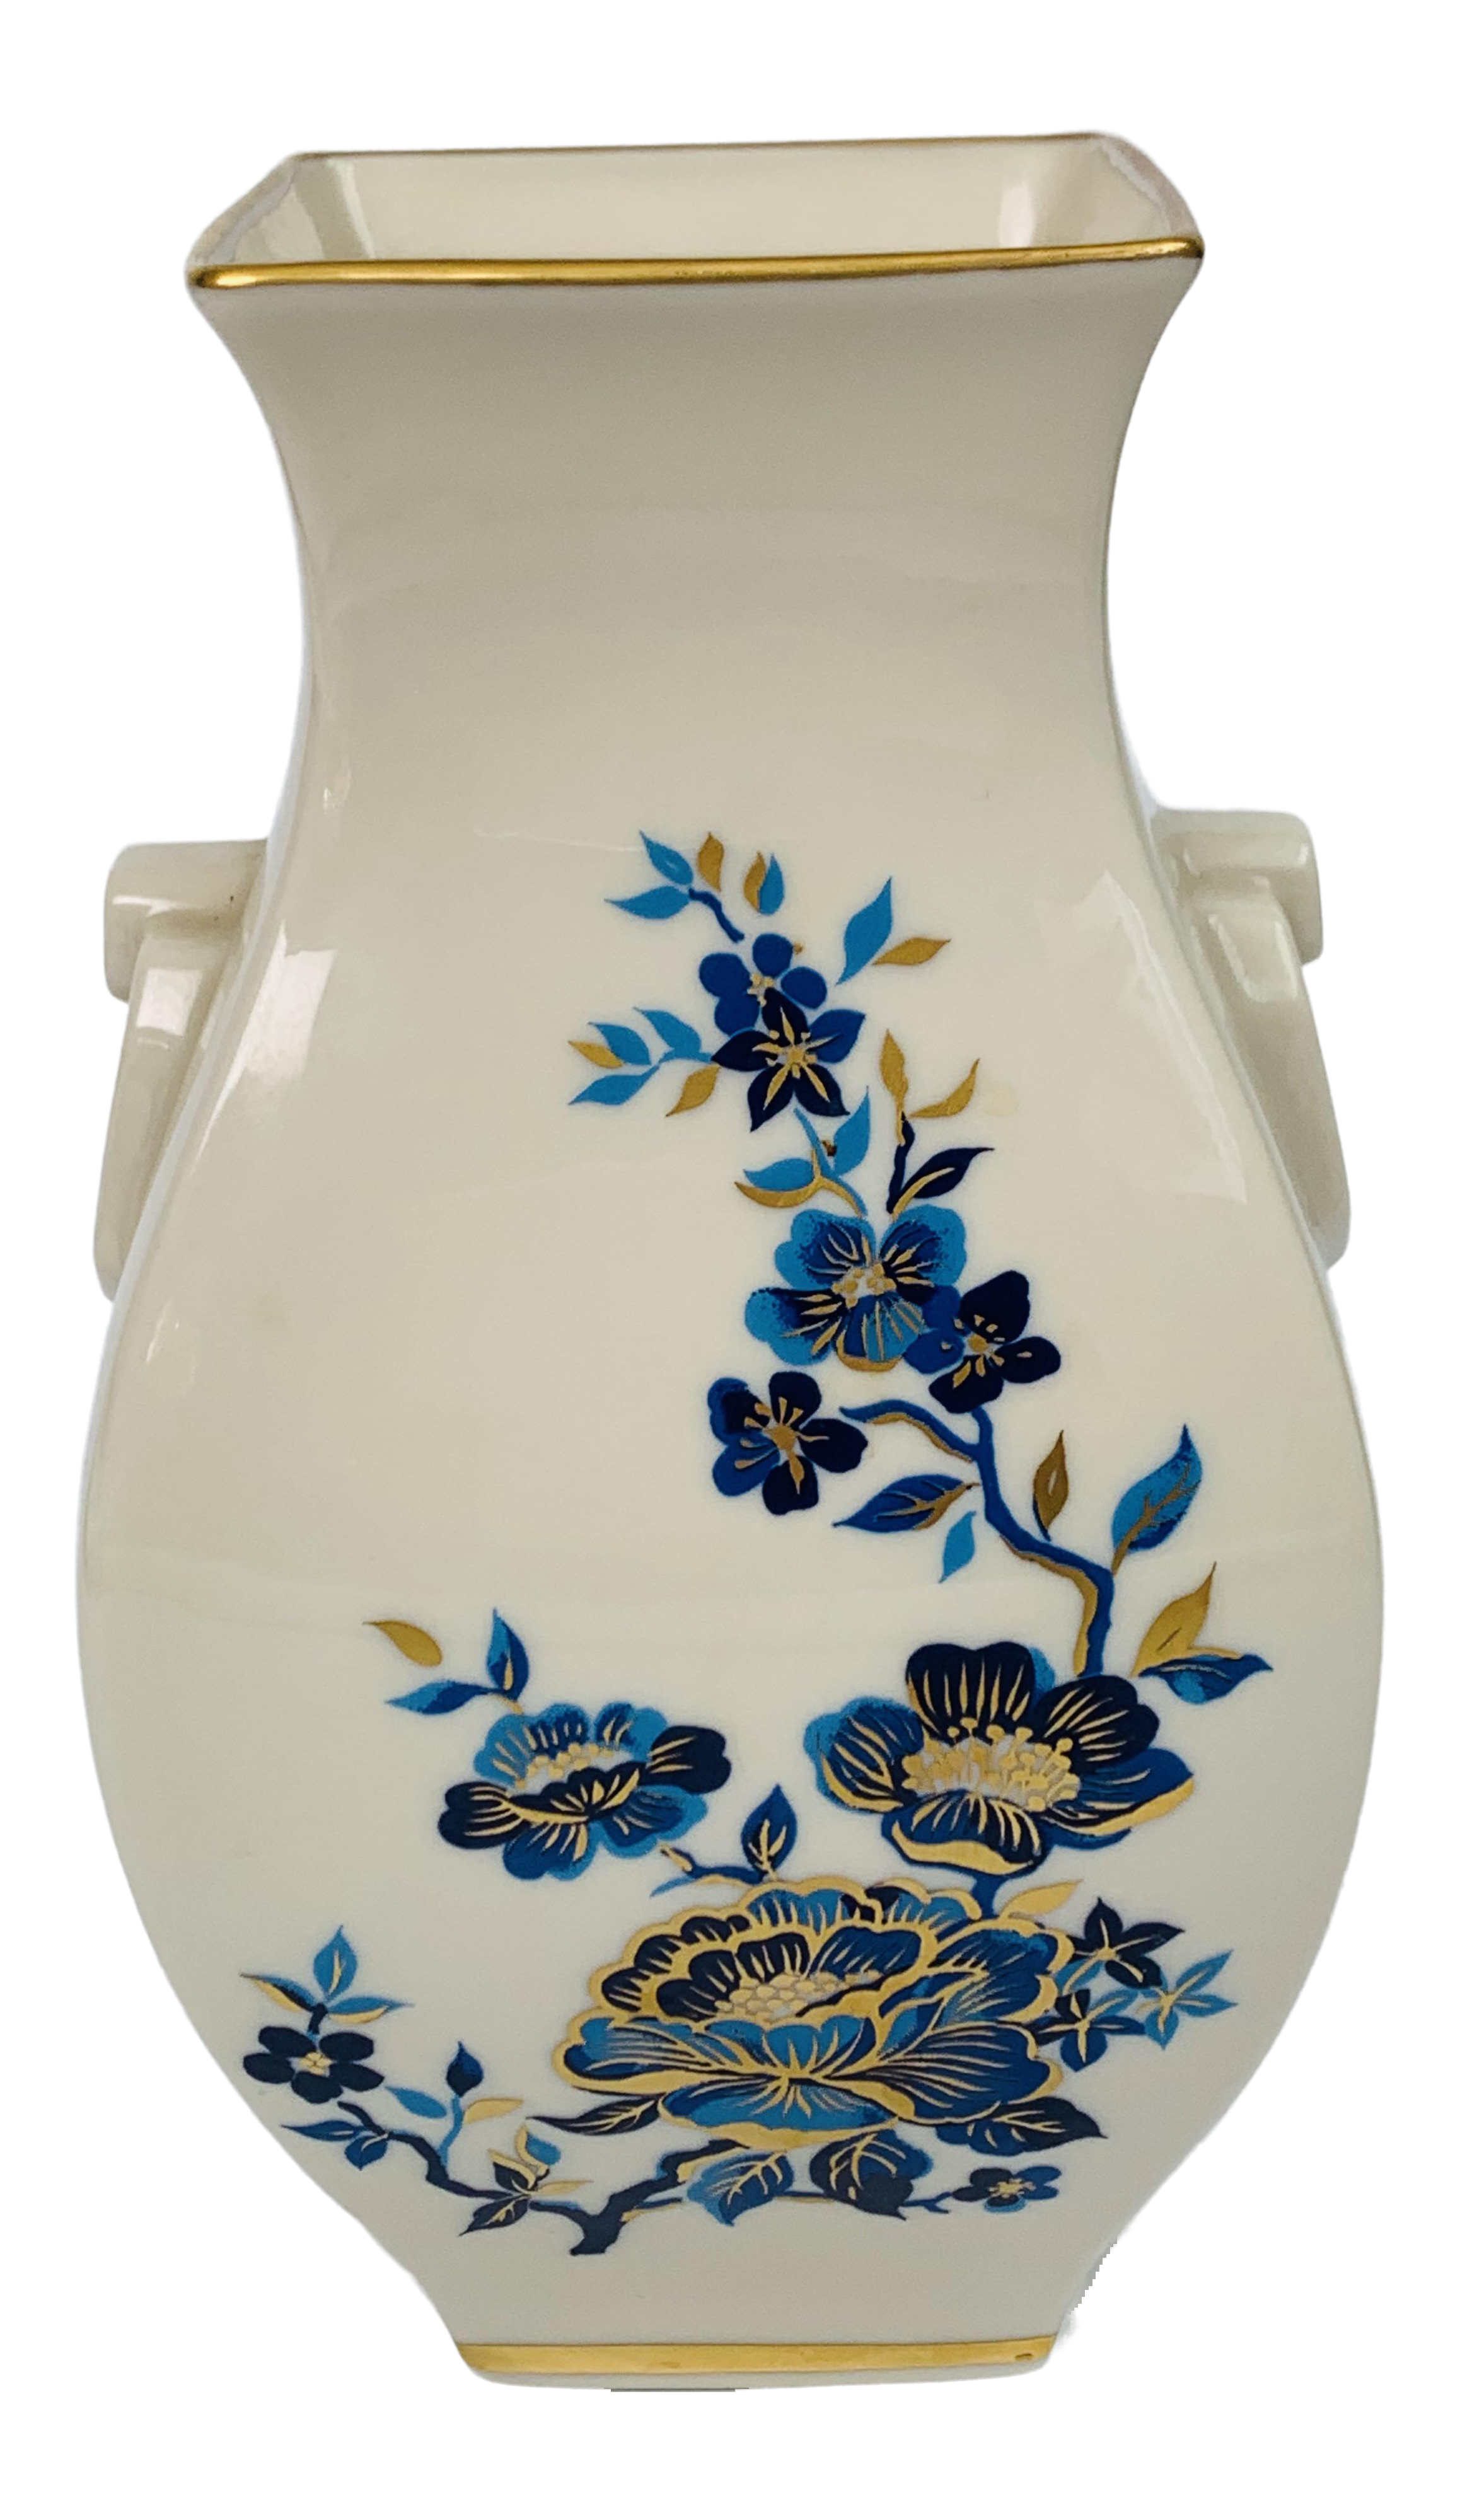 Vintage Lenox Pagoda Blue White and 24k Gold Hand Painted Vase For Sale  sc 1 st  Chairish & Vintage Lenox Pagoda Blue White and 24k Gold Hand Painted Vase ...